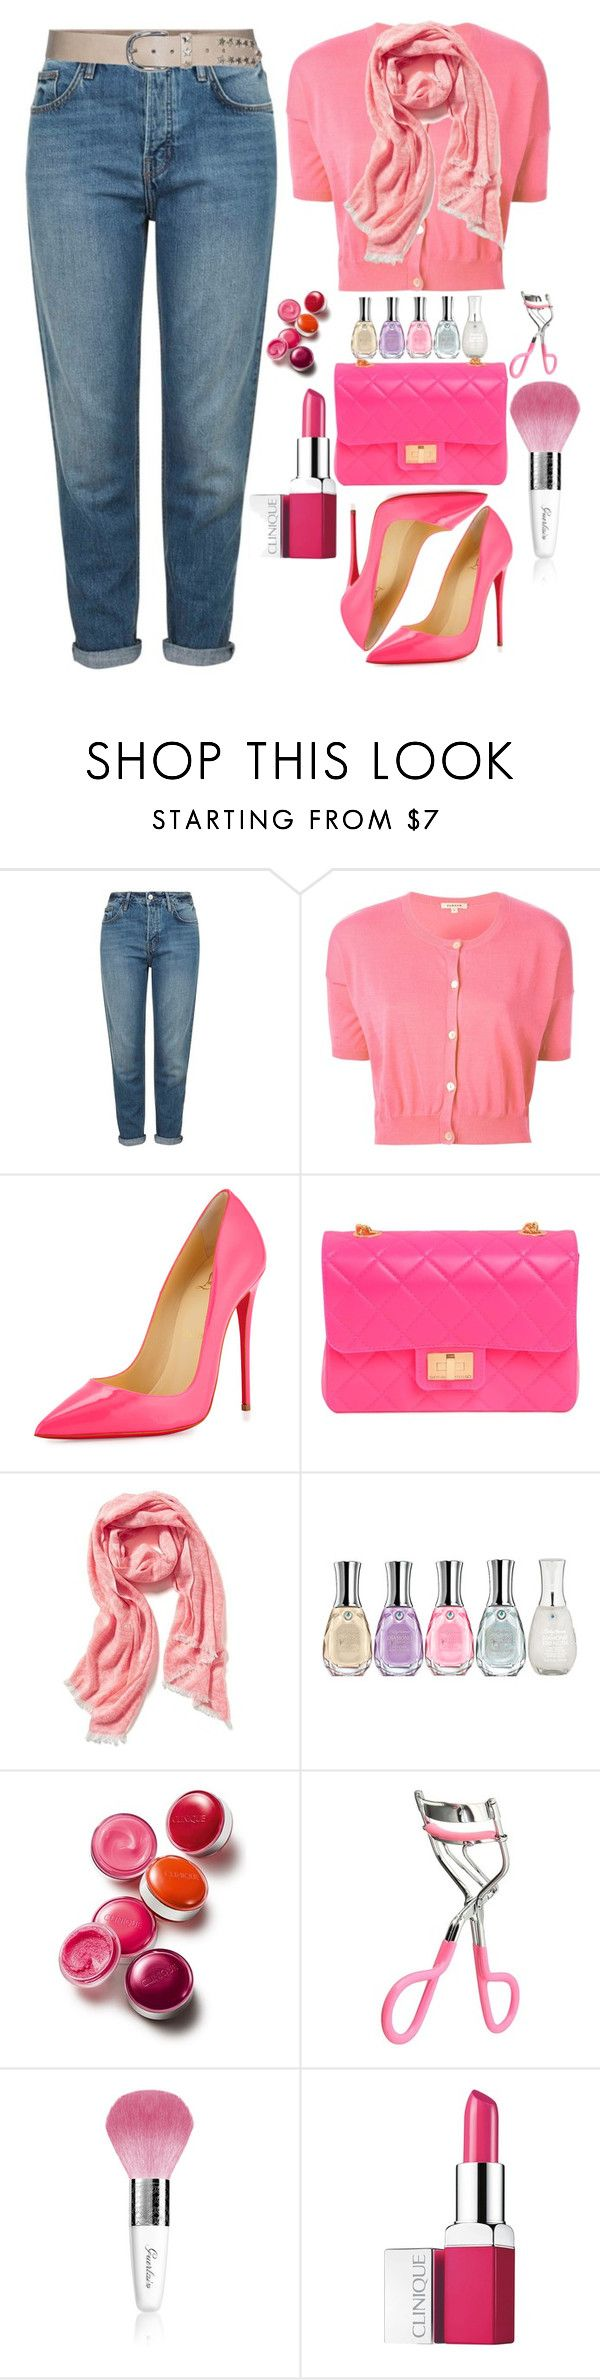 """Neon"" by grozdana-v ❤ liked on Polyvore featuring Topshop, P.A.R.O.S.H., Christian Louboutin, Design Inverso, Old Navy, Sally Hansen, Clinique, Guerlain, s.pa accessoires and women's clothing"